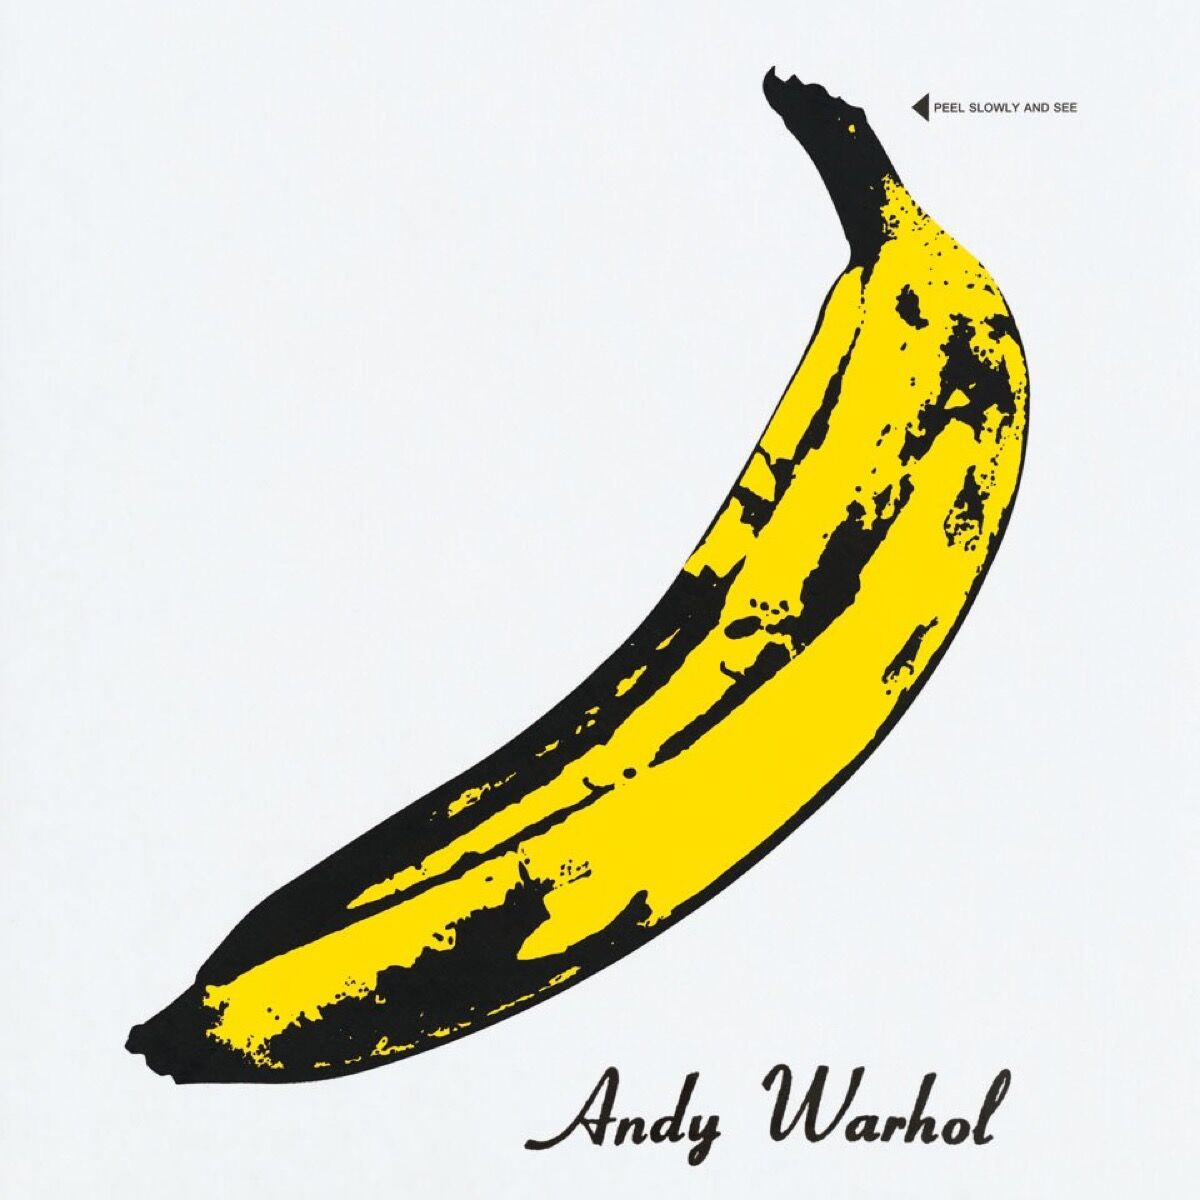 Andy Warhol's cover for The Velvet Underground and Nico by The Velvet Underground and Nico, 1967. Courtesy of TASCHEN.